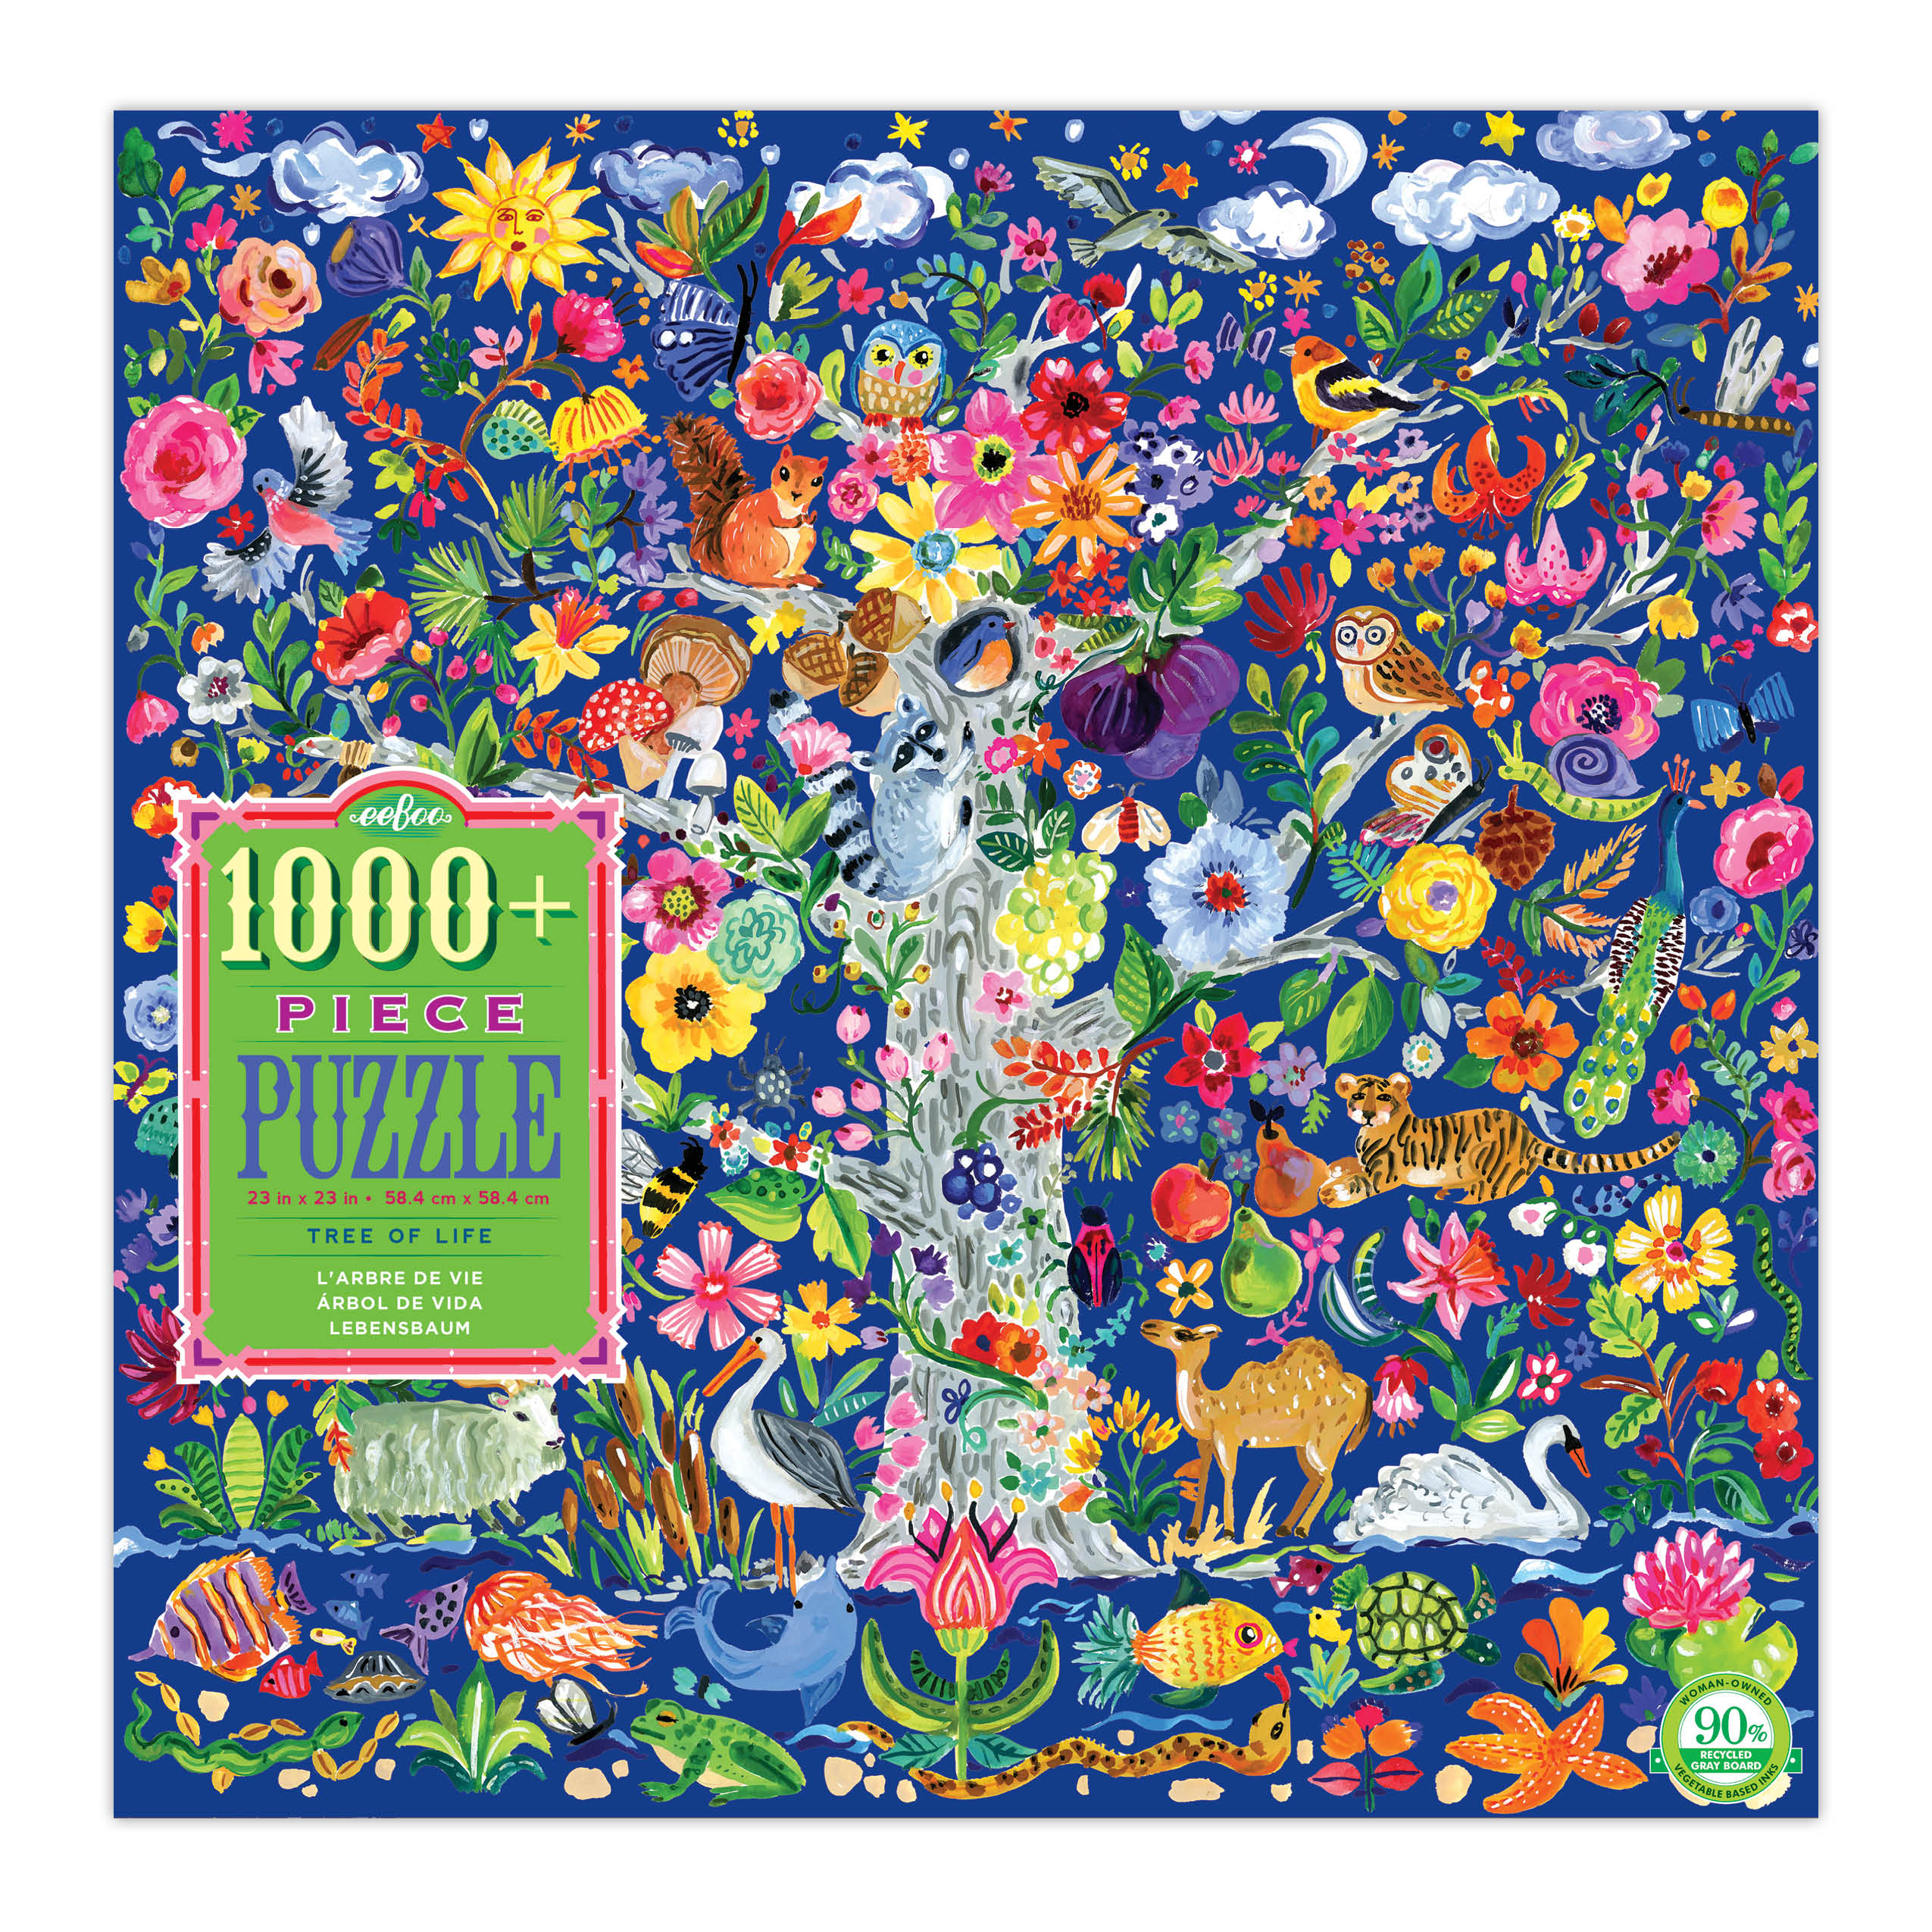 1008 Piece Tree of Life Jigsaw Puzzle